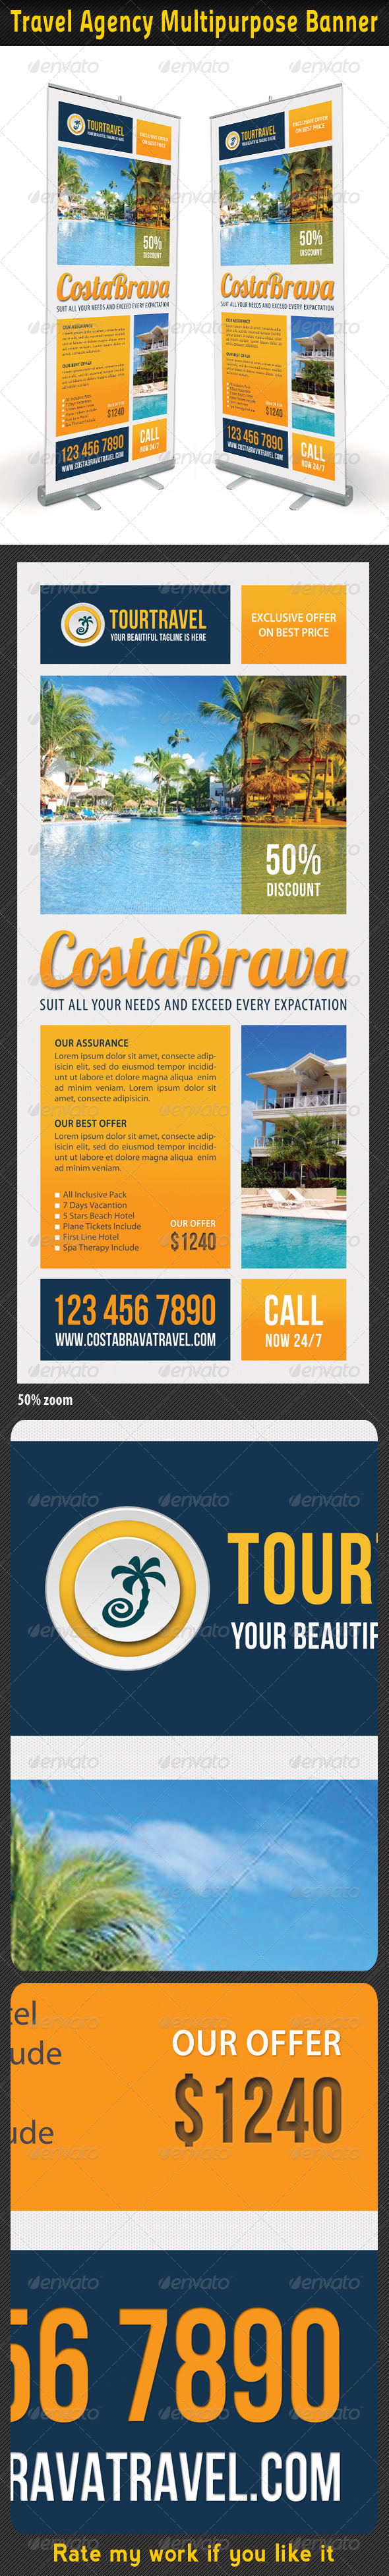 Travel Agency Banner Template 04 - Signage Print Templates